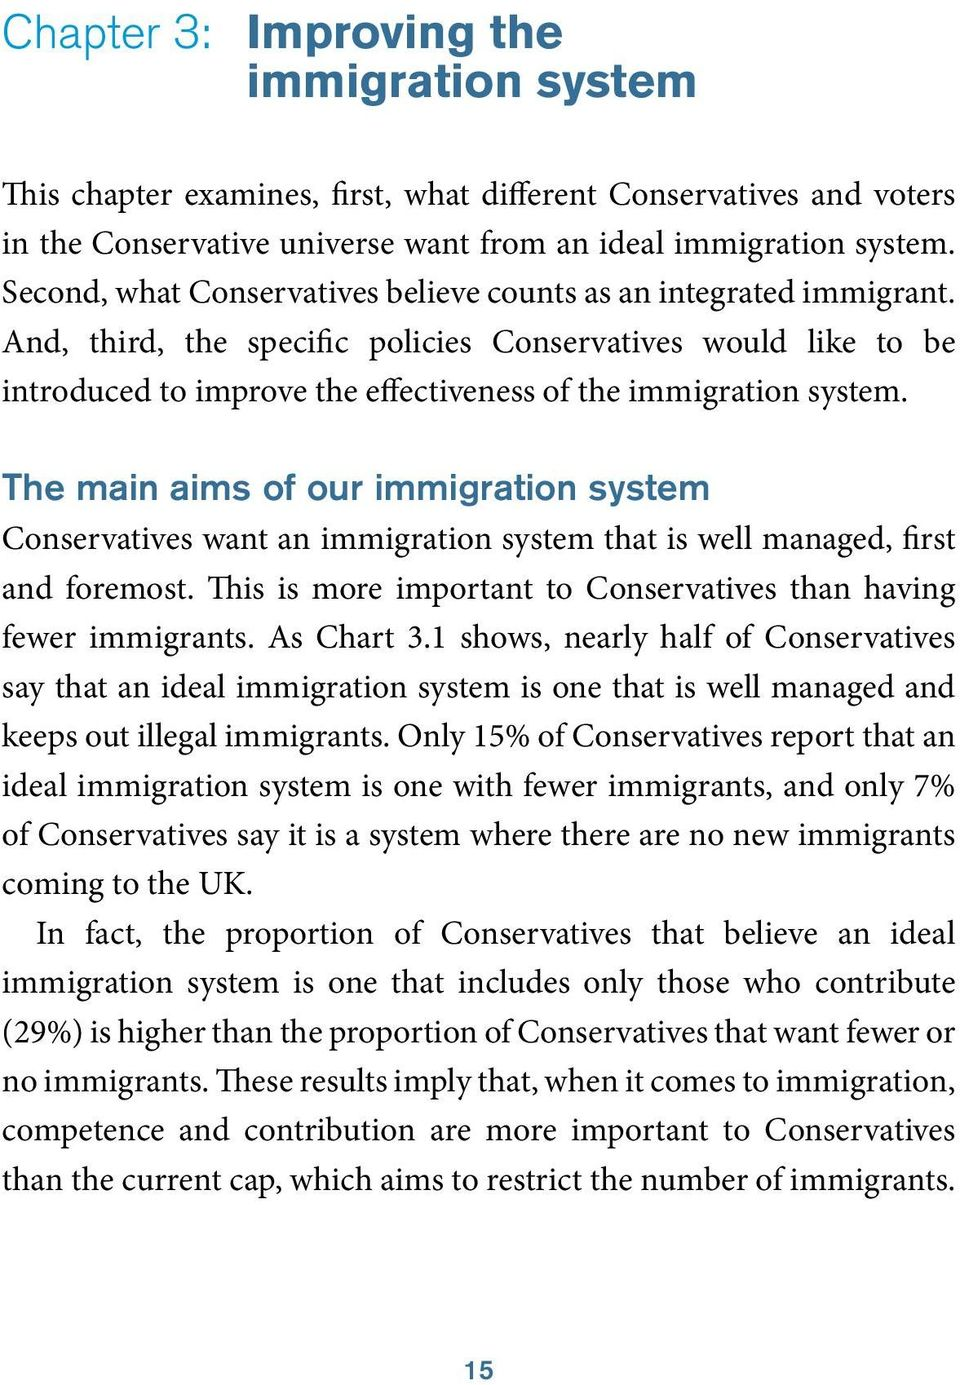 And, third, the specific policies Conservatives would like to be introduced to improve the effectiveness of the immigration system.